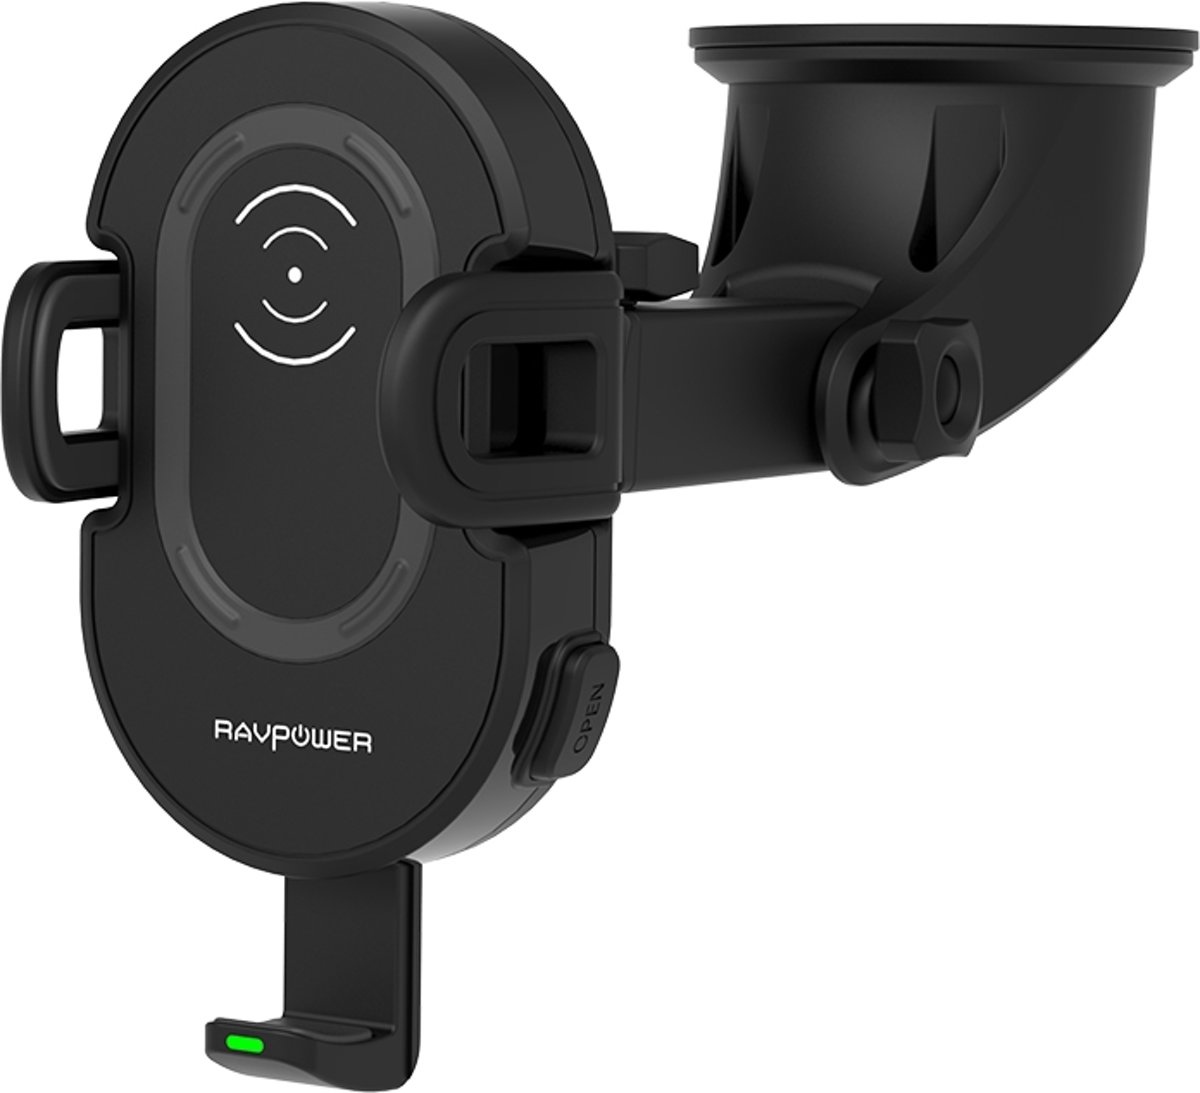 Ravpower Wireless Car Charger RP-SH007 and Car Holder Black kopen